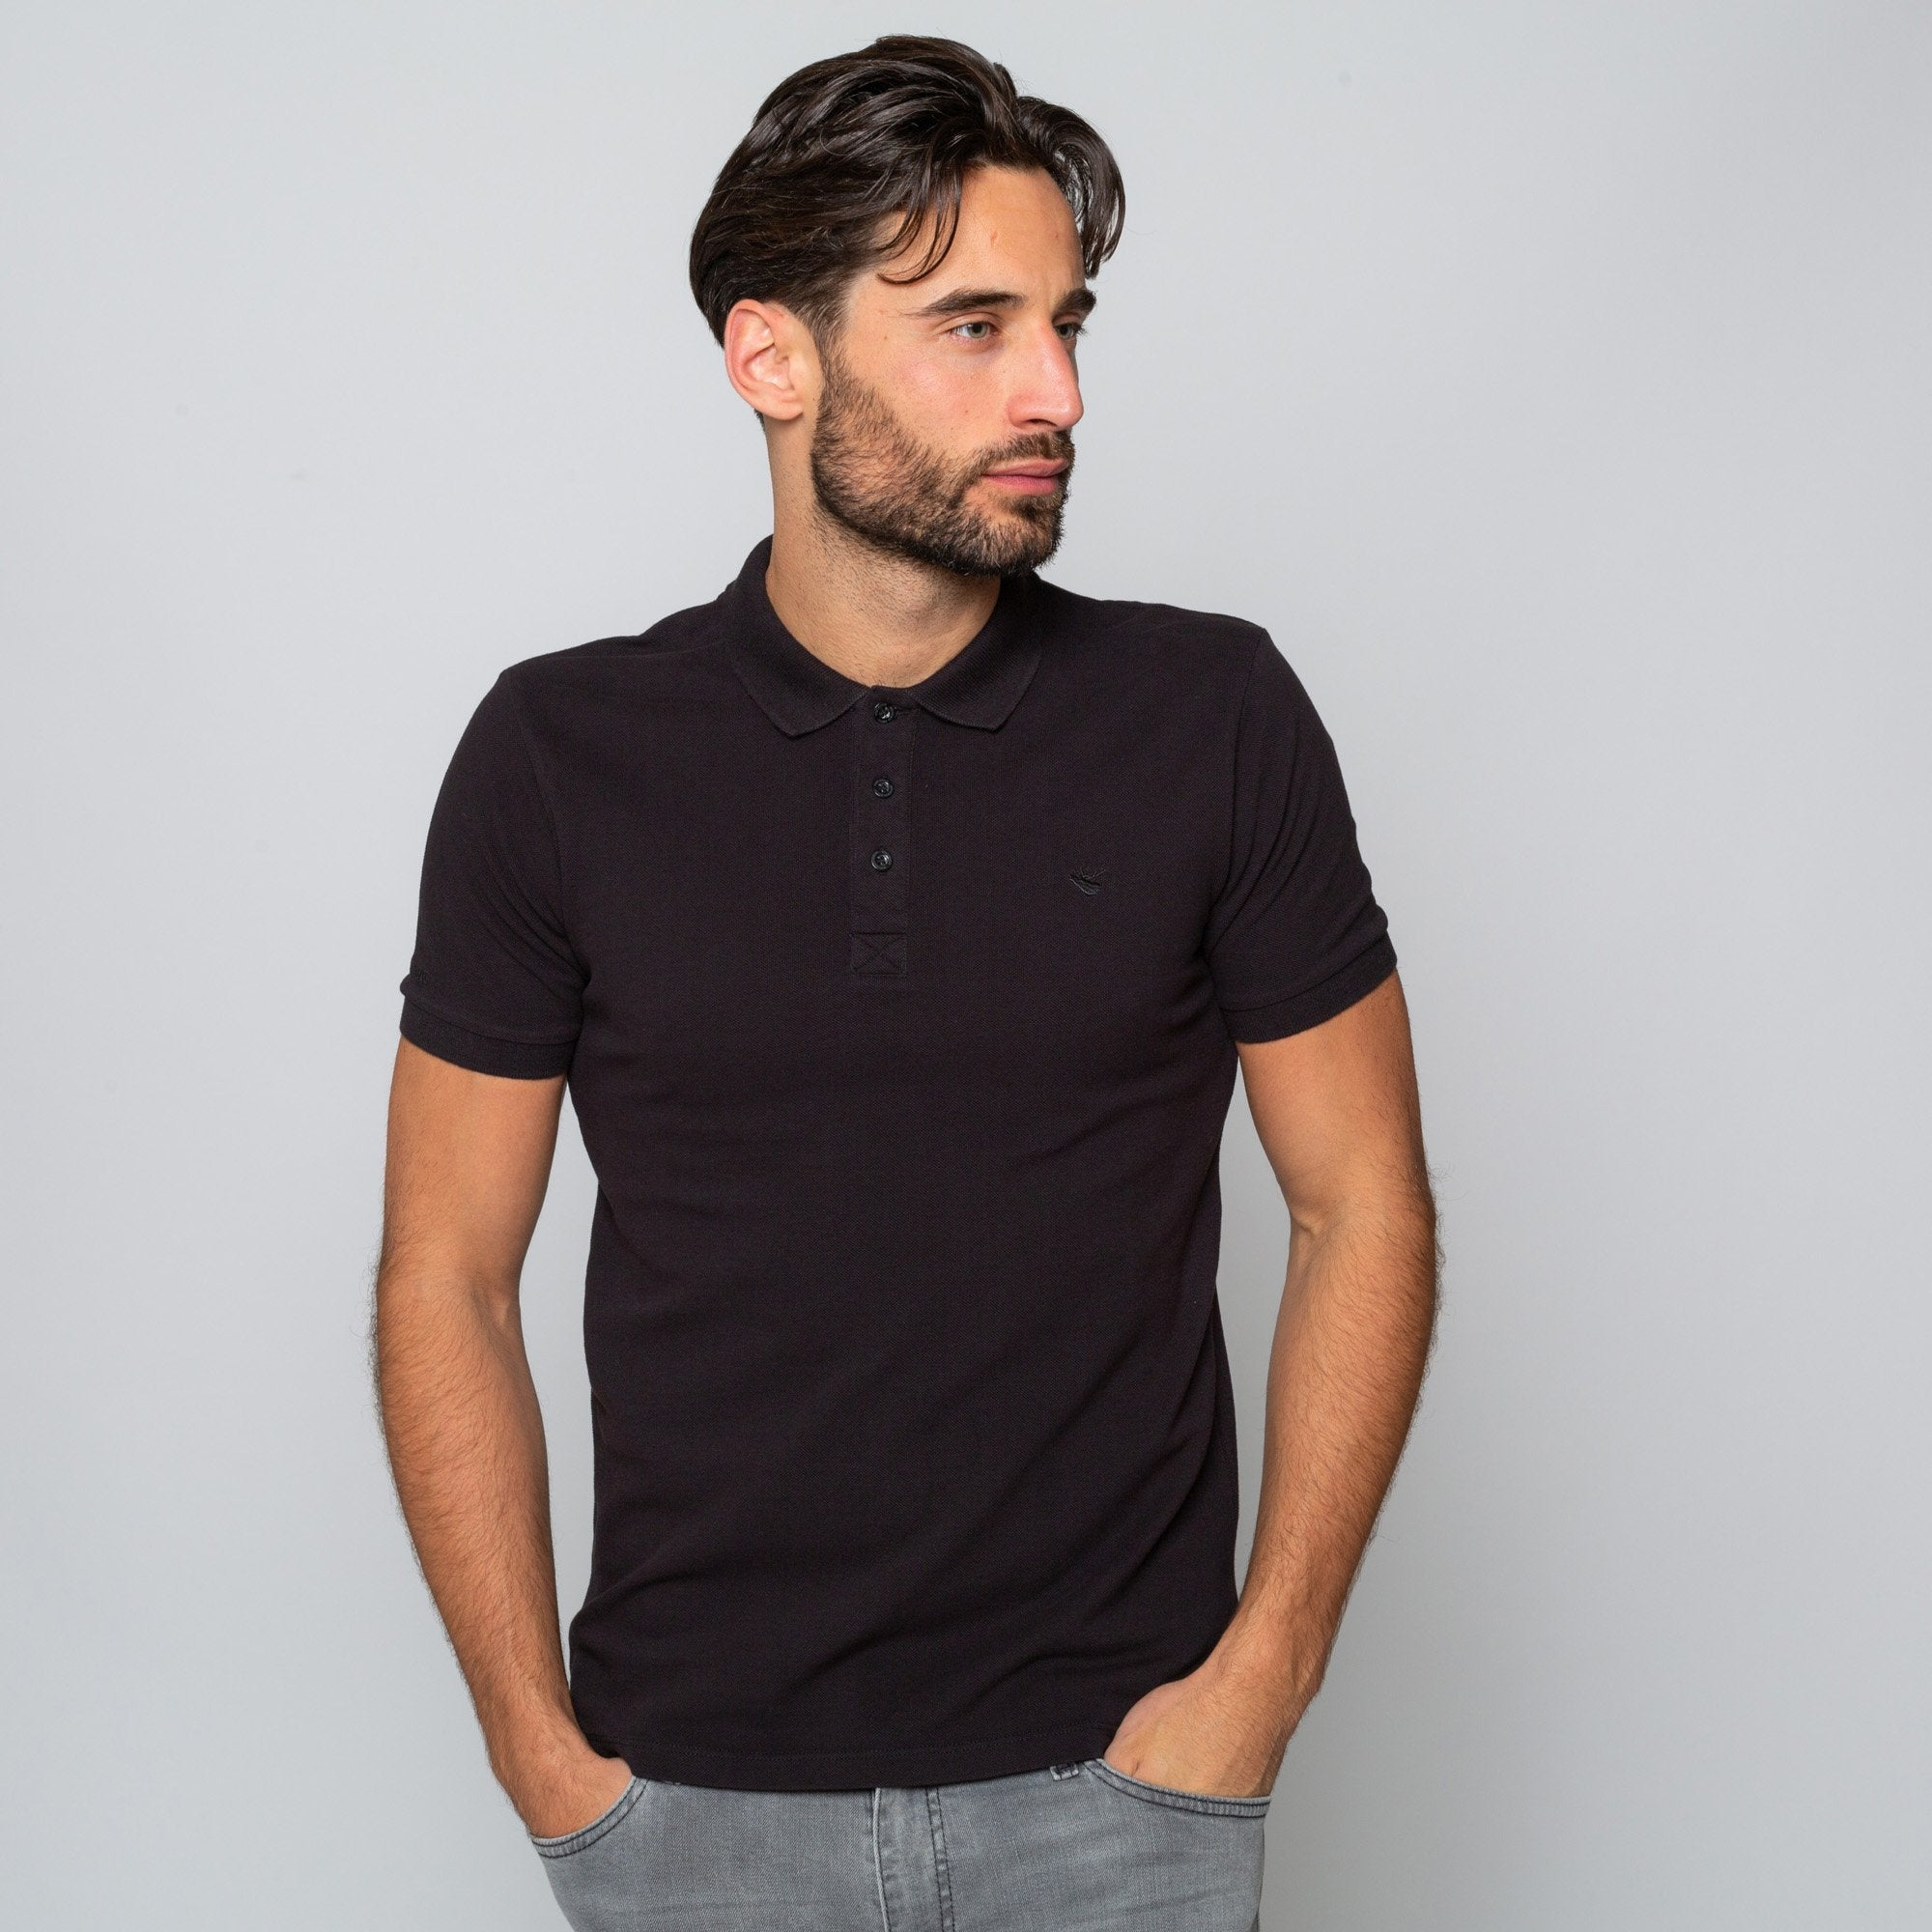 Goodwin Smith Clothing S / Black / Cotton Pique HEWITT BLACK